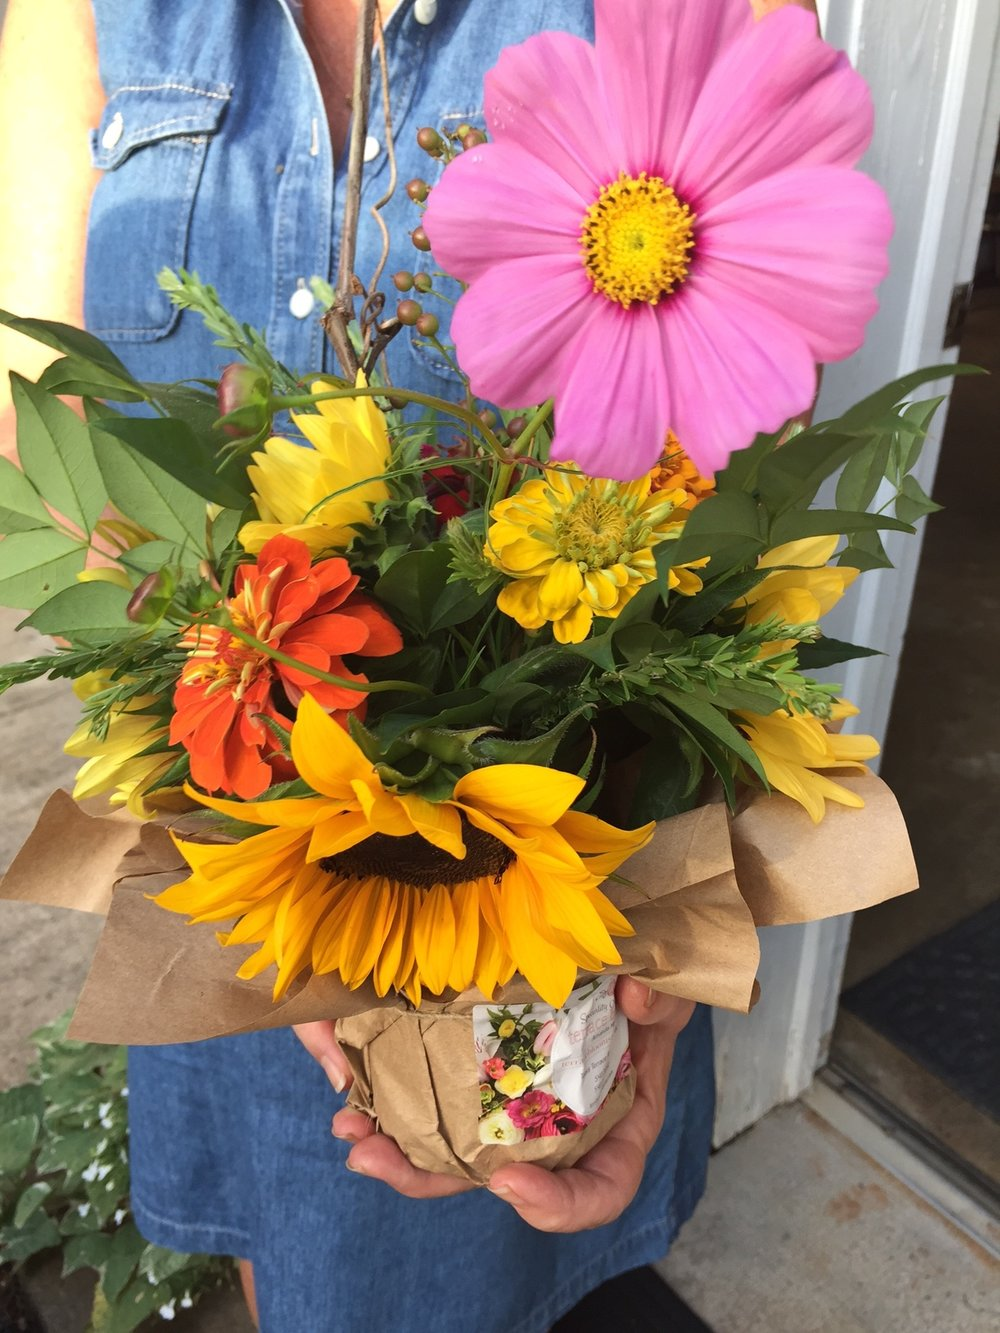 This beautiful bouquet contains sunflowers and a unique variety of zinnia's and other flowers